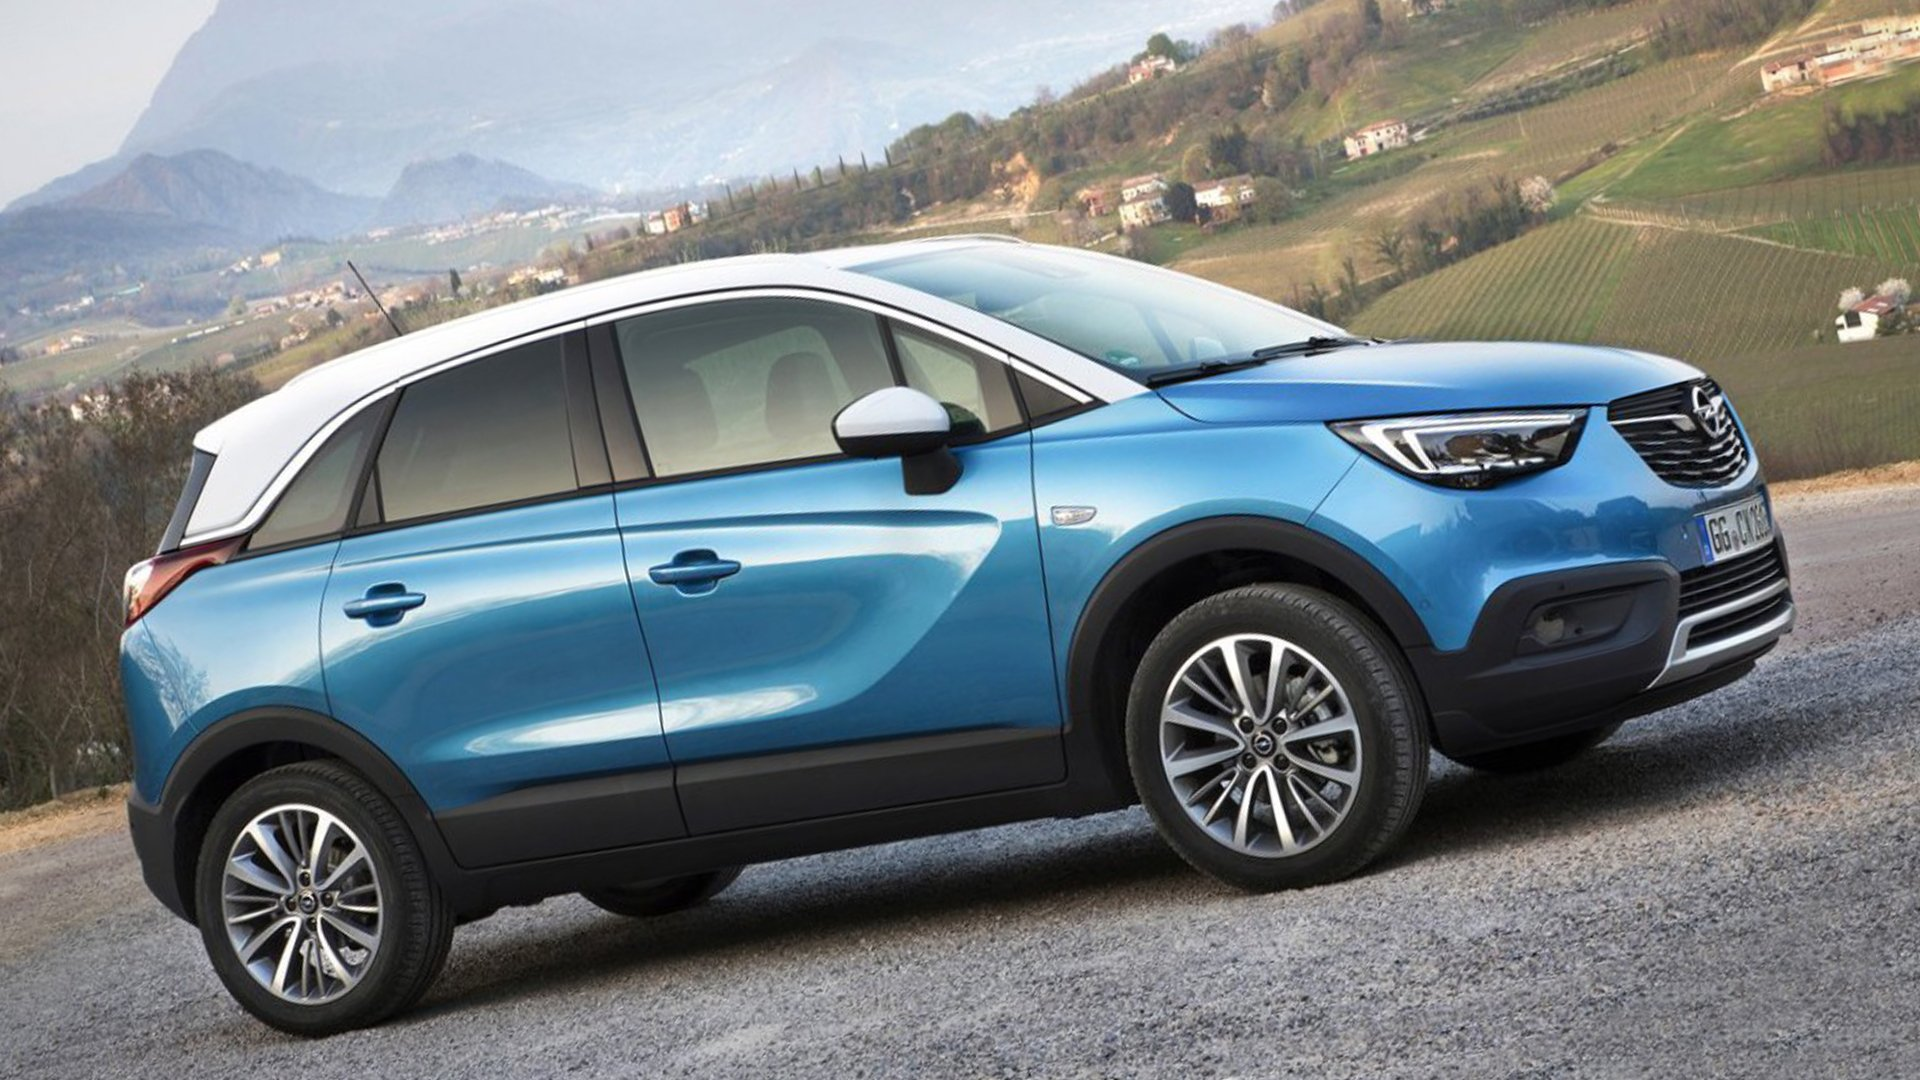 New 2019 Opel Crossland X Price